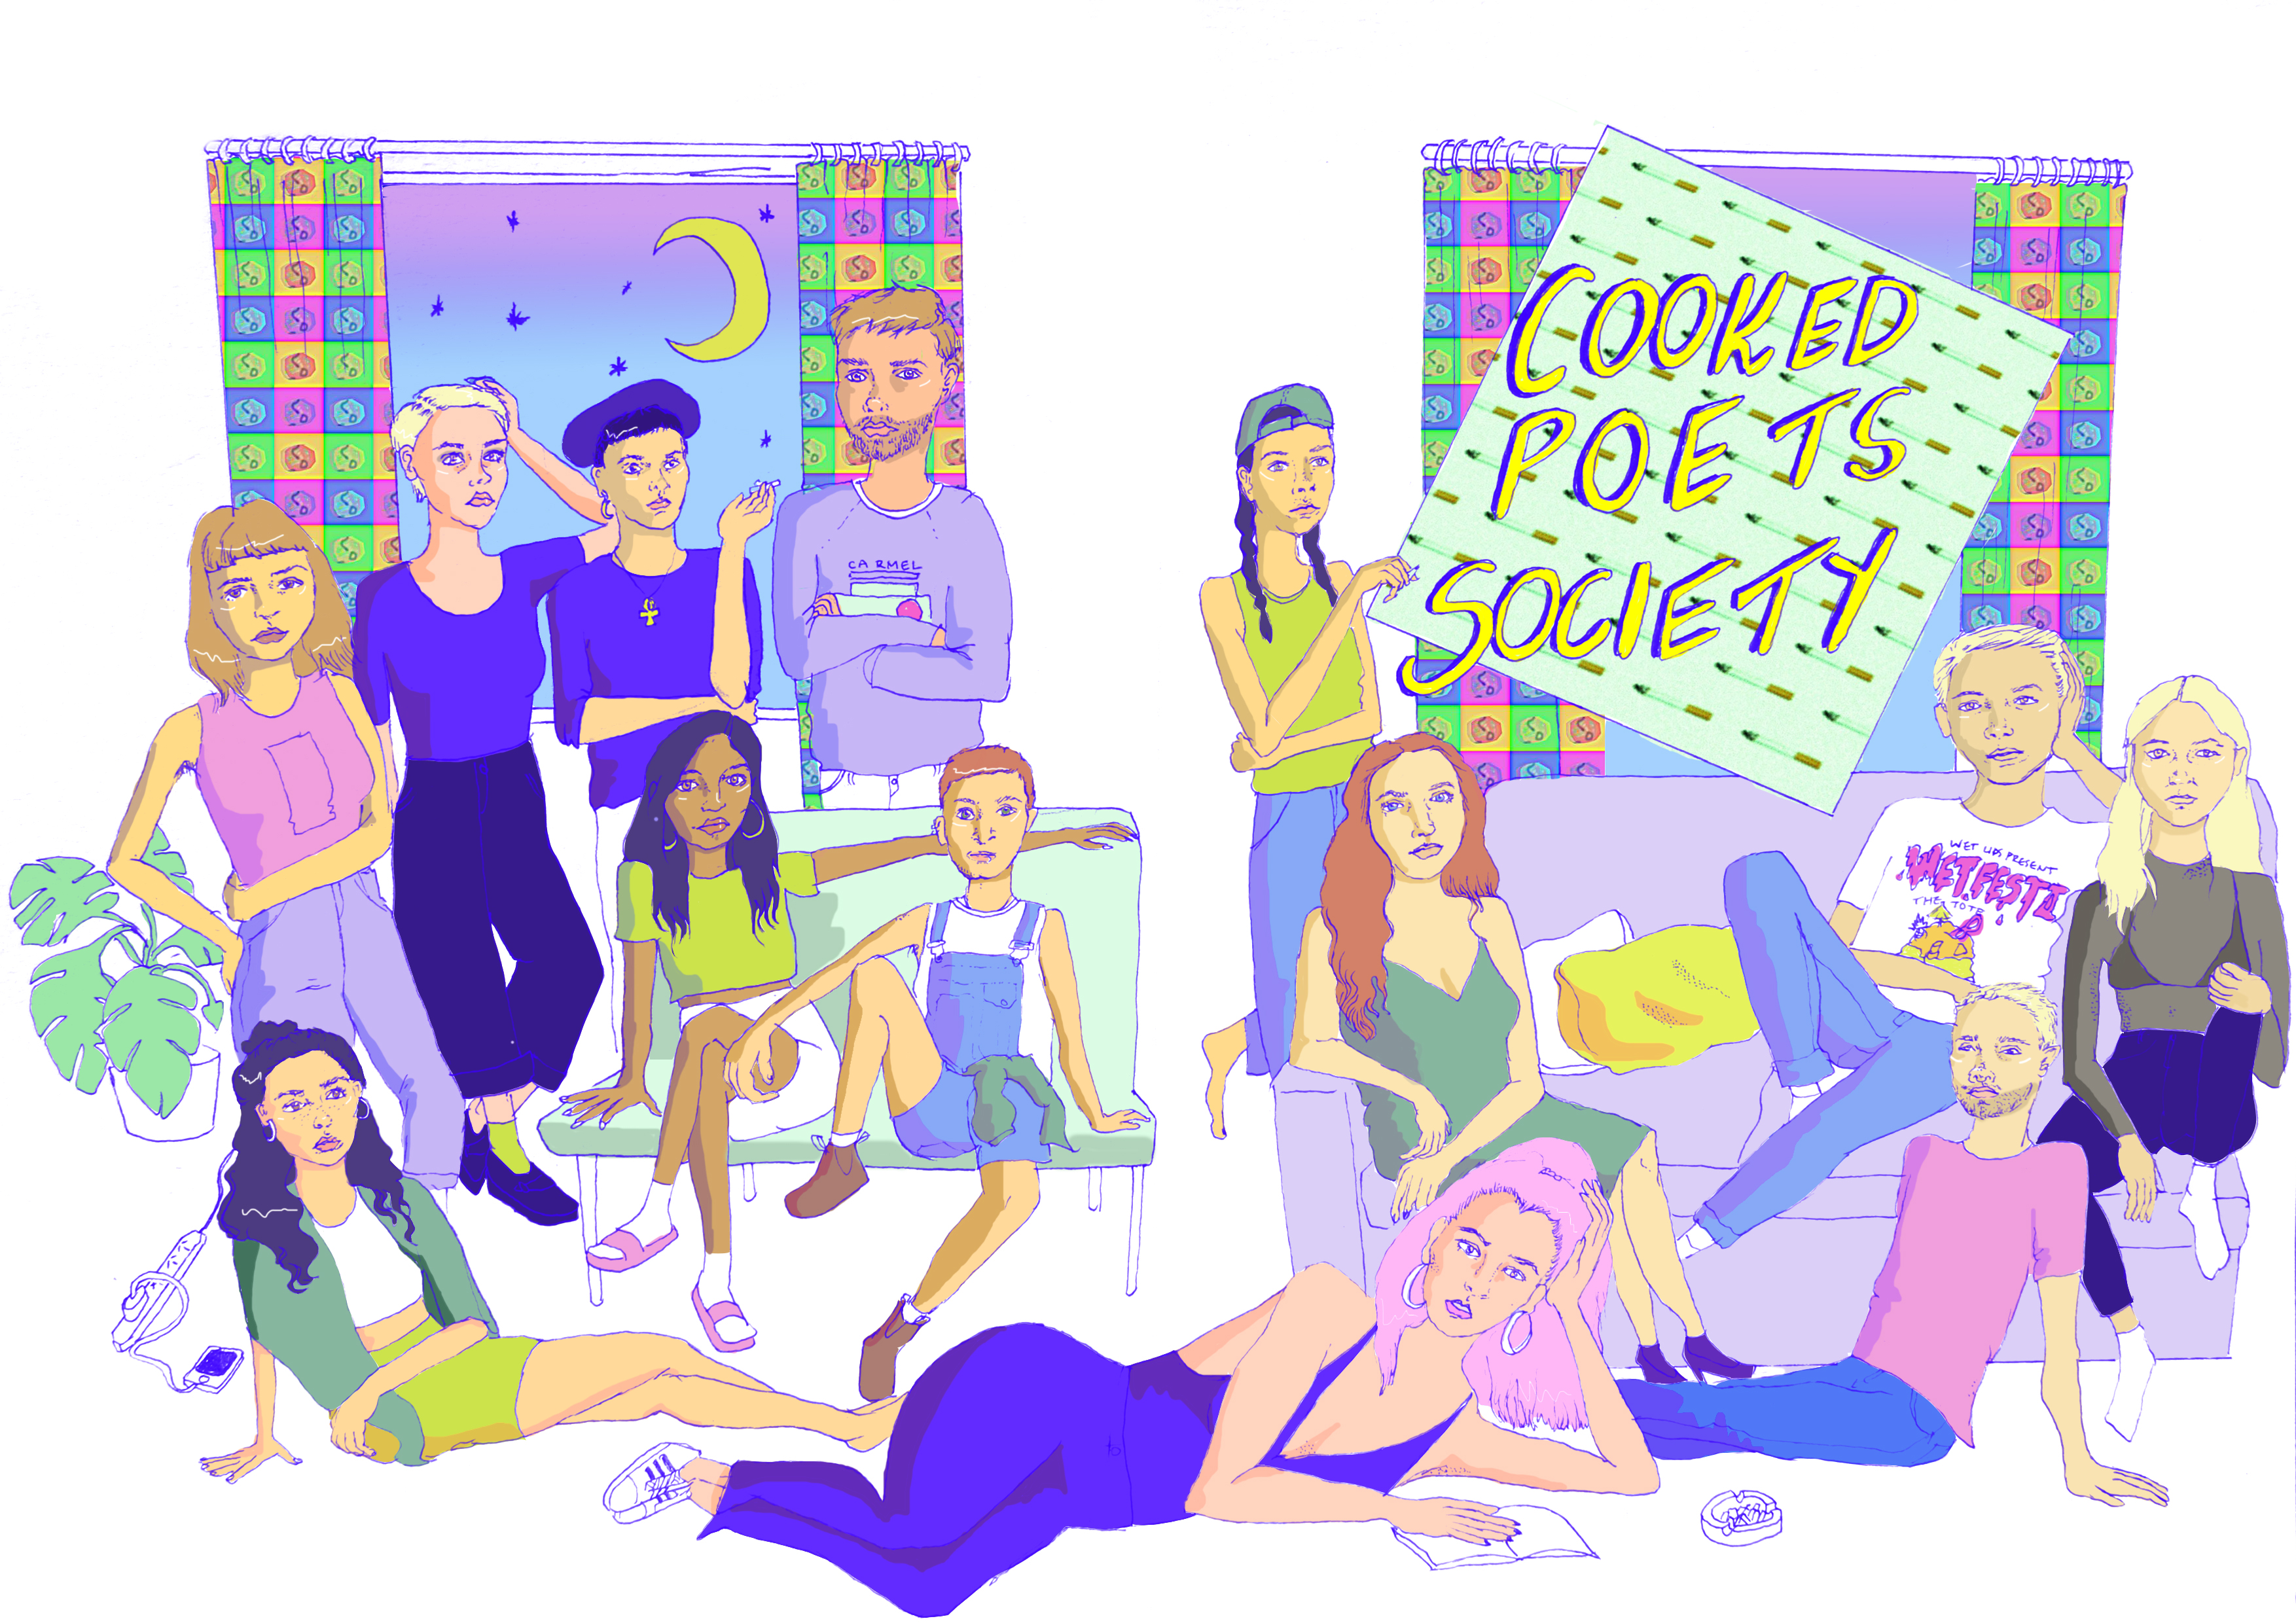 Cooked Poets Society Zine Cover